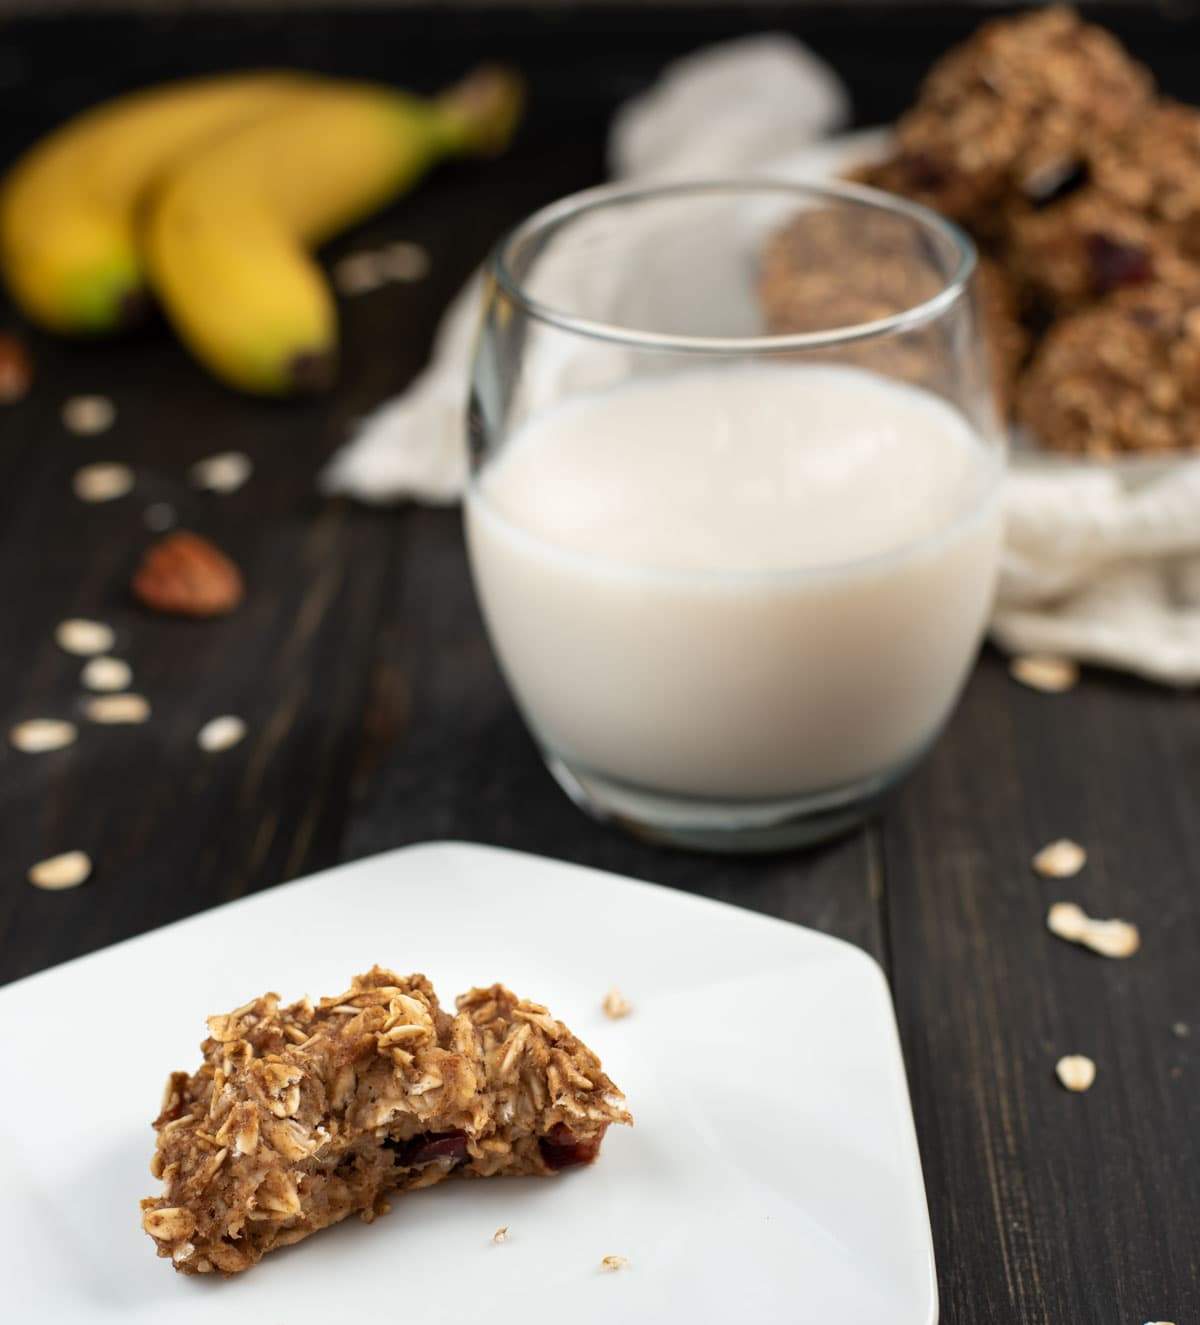 Healthy banana oat cookie on a plate with a glass of milk